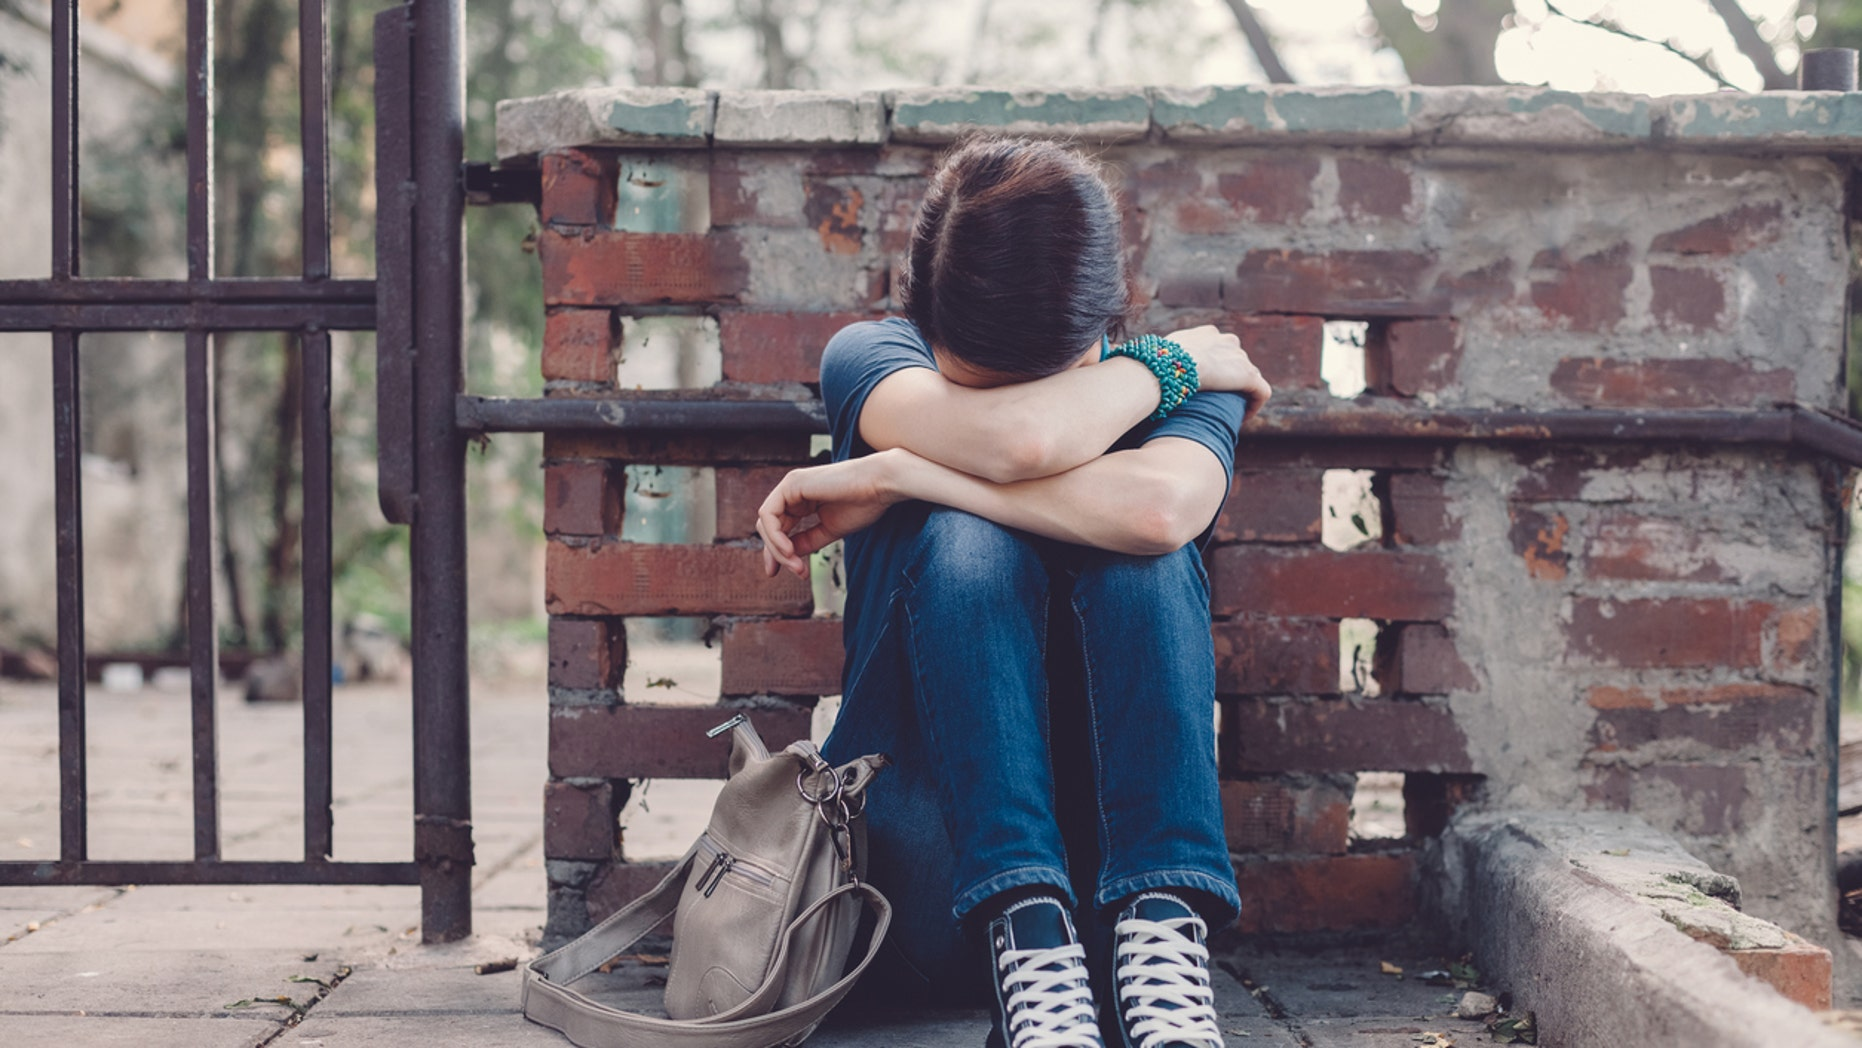 Crying girl with head in hands sitting on the ground